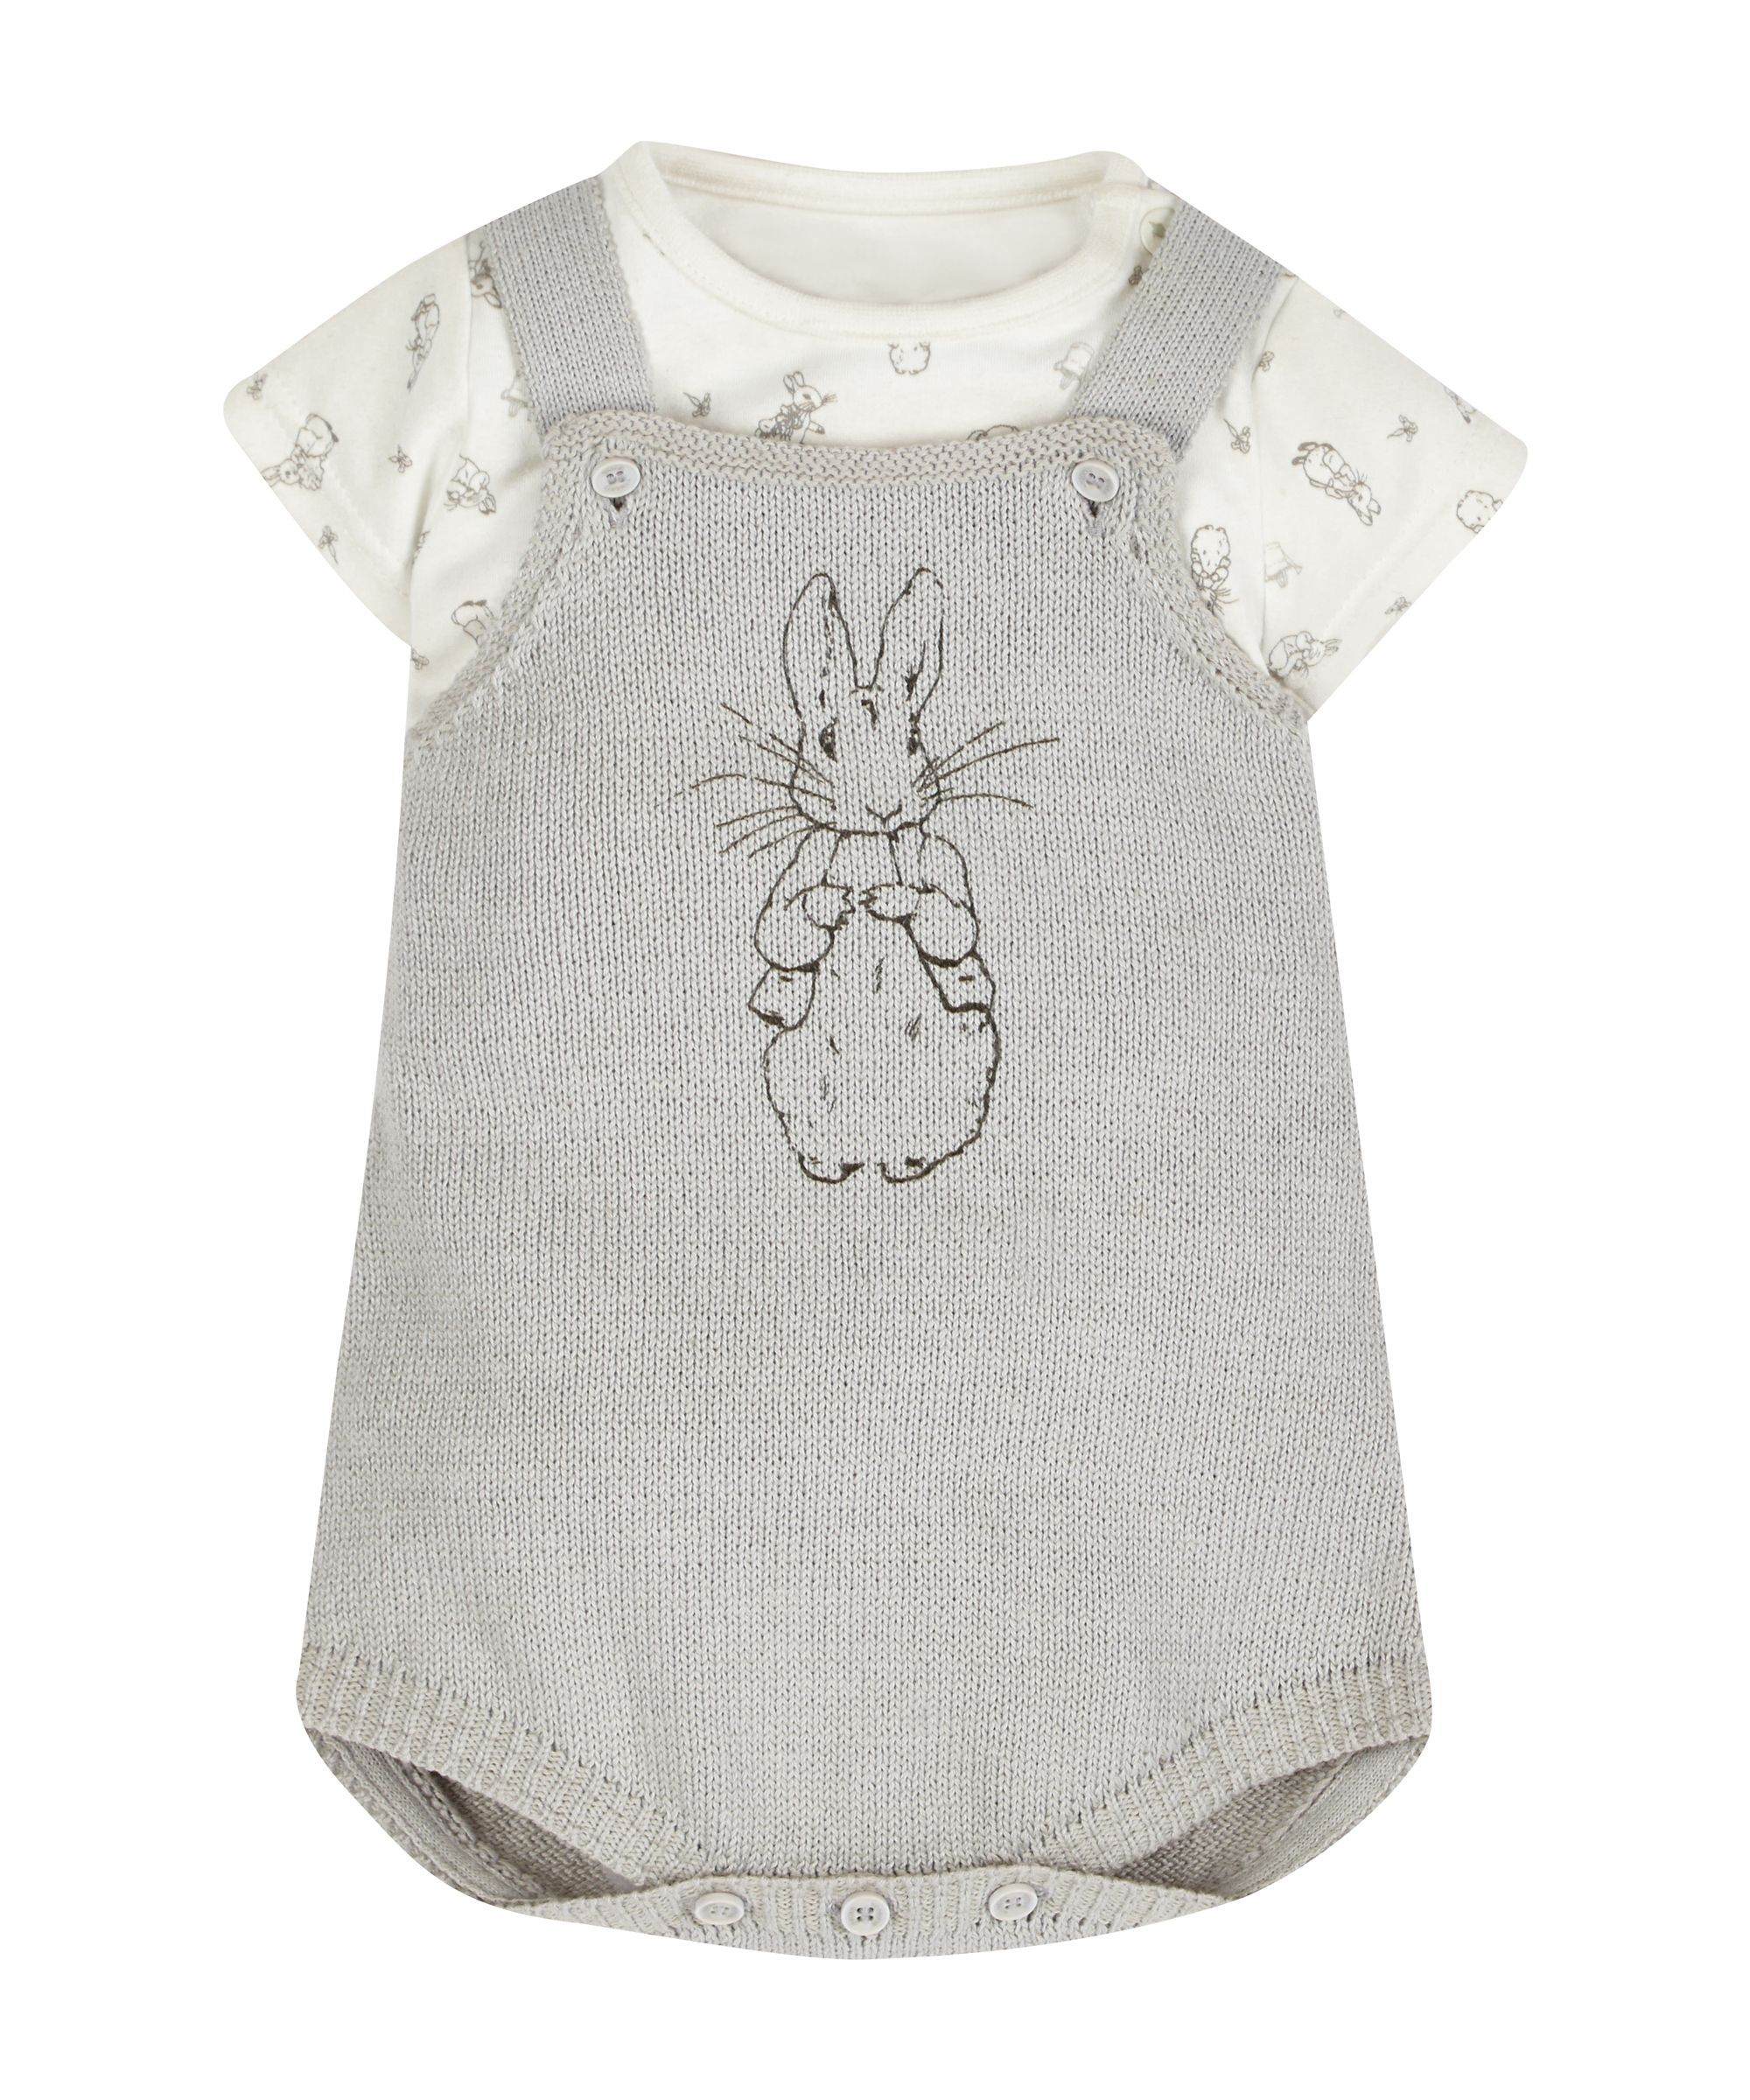 788f73be3 Peter Rabbit Bodysuit and Knitted Dungarees - Mothercare 16£ | Kids ...